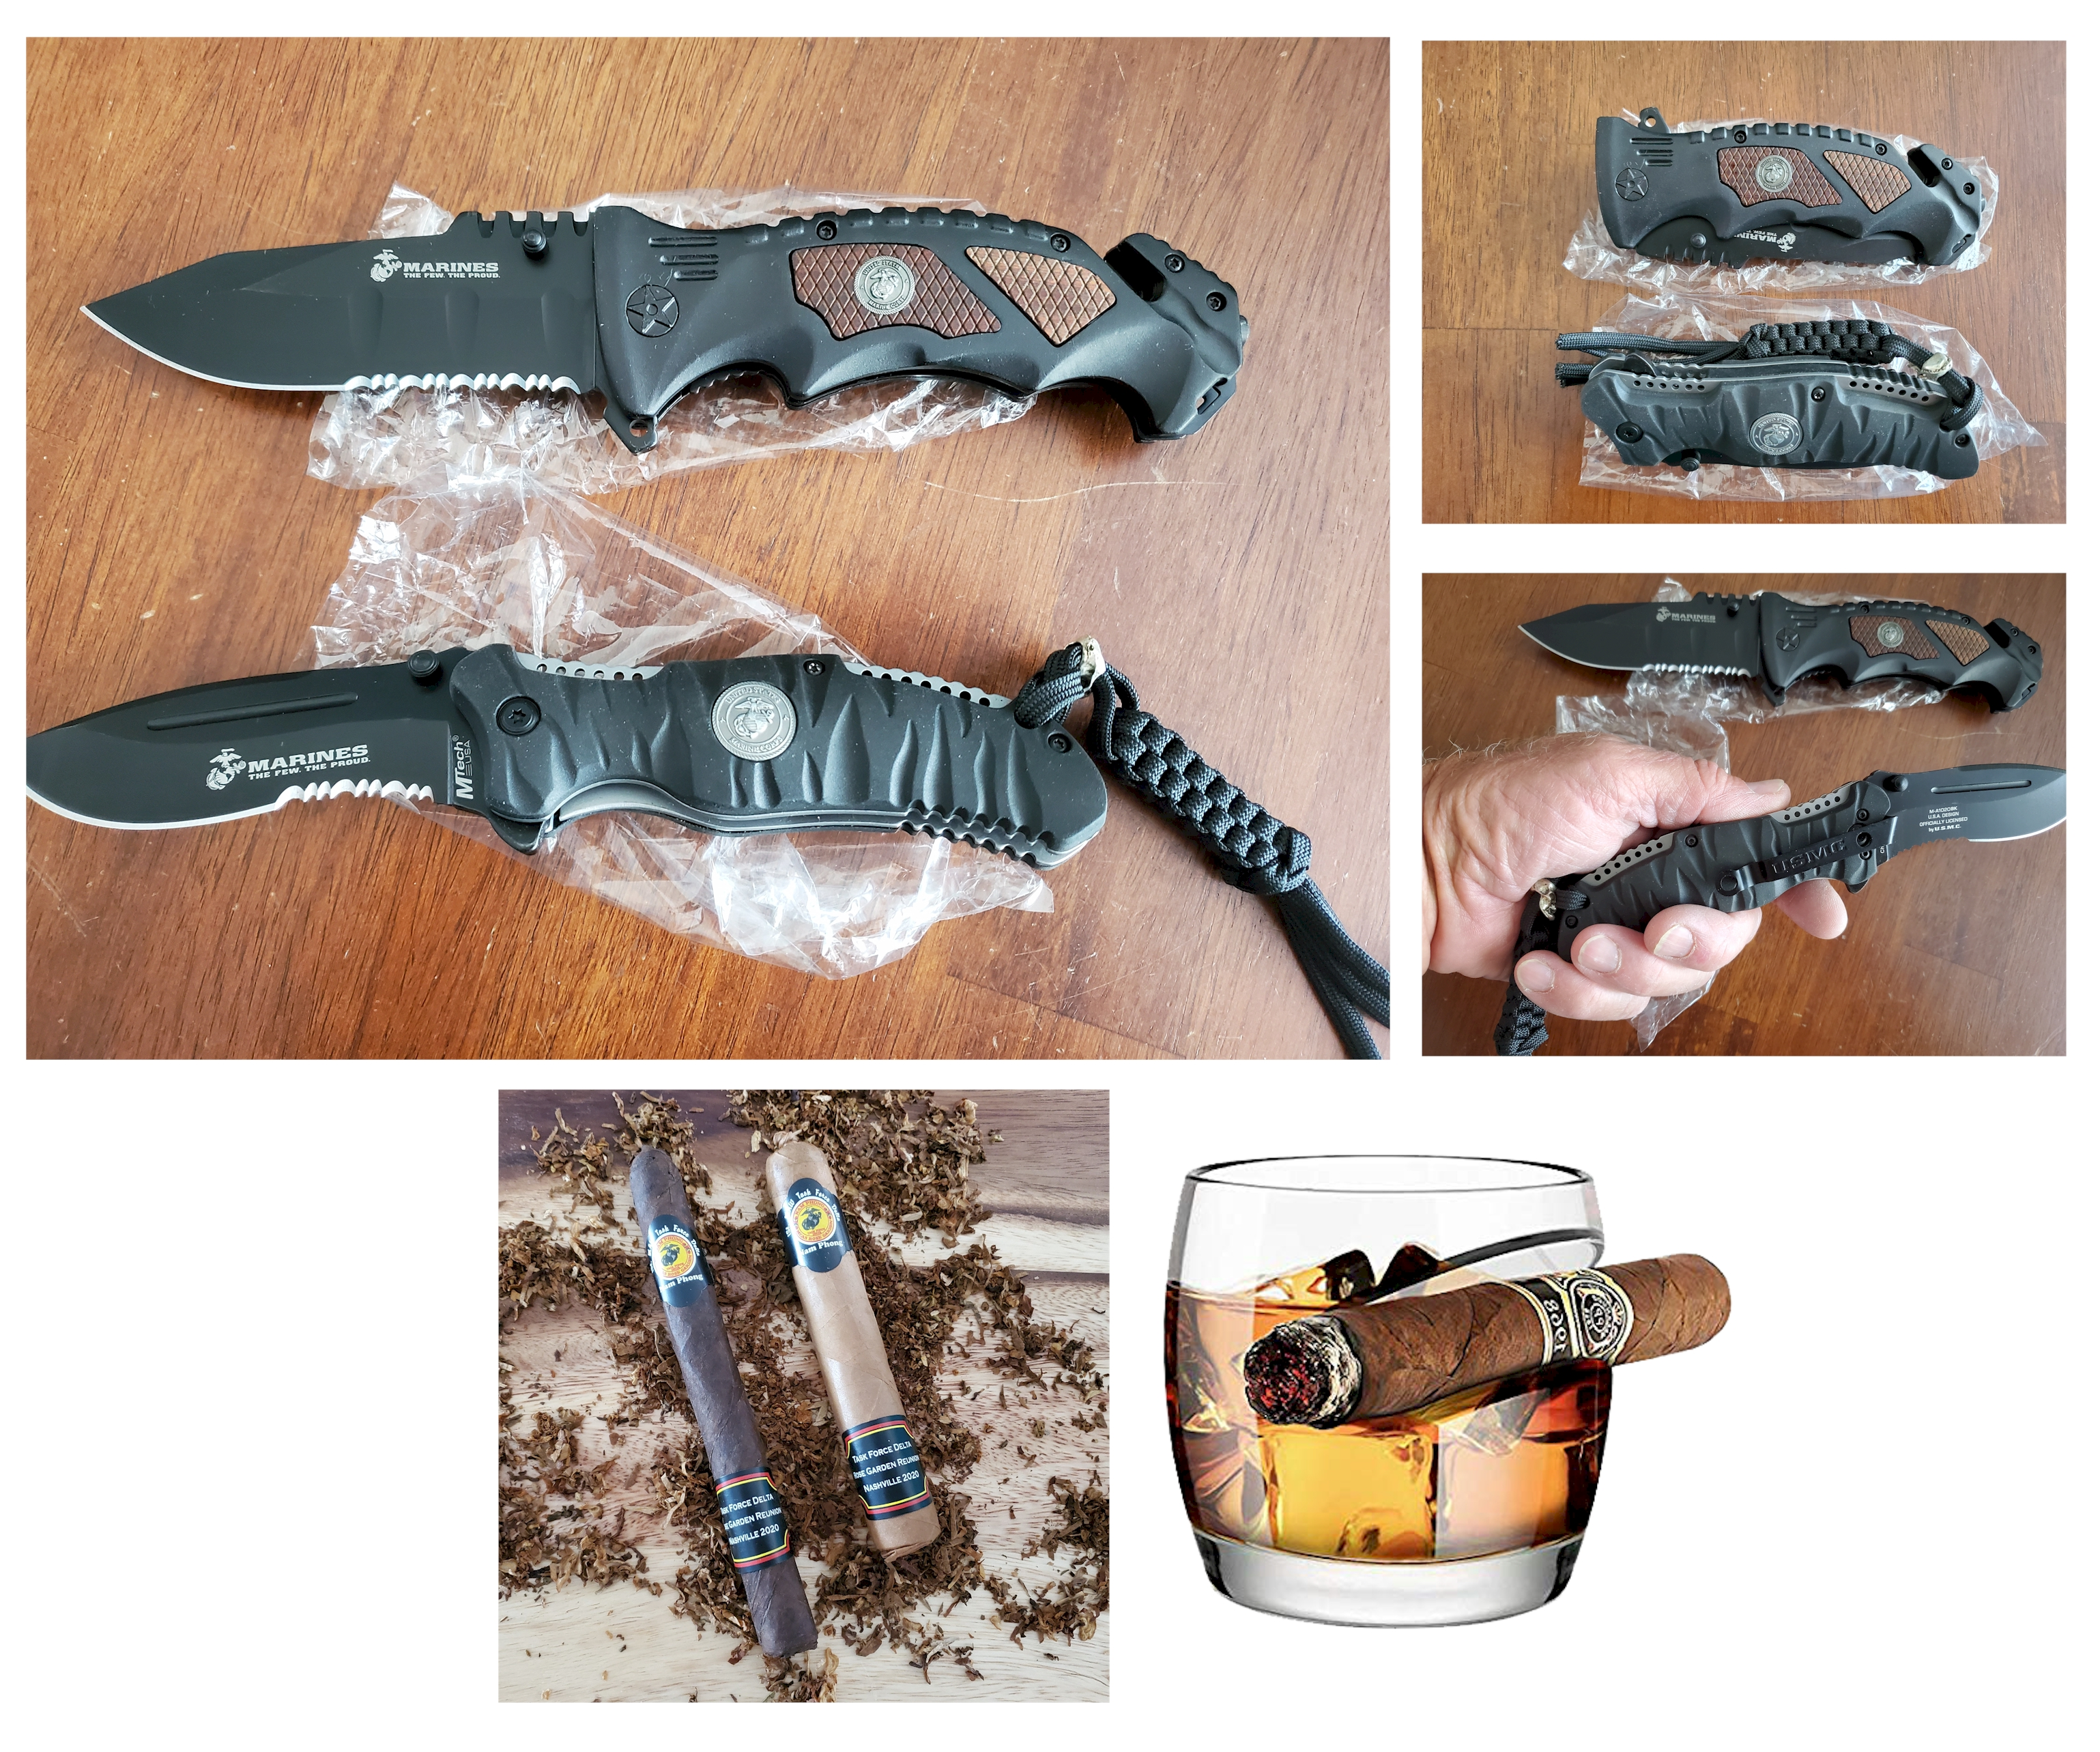 USMC Folding Knives Set, Cigar-rest Whiskey Tumbler and MCAS Rose Garden banded Cigars